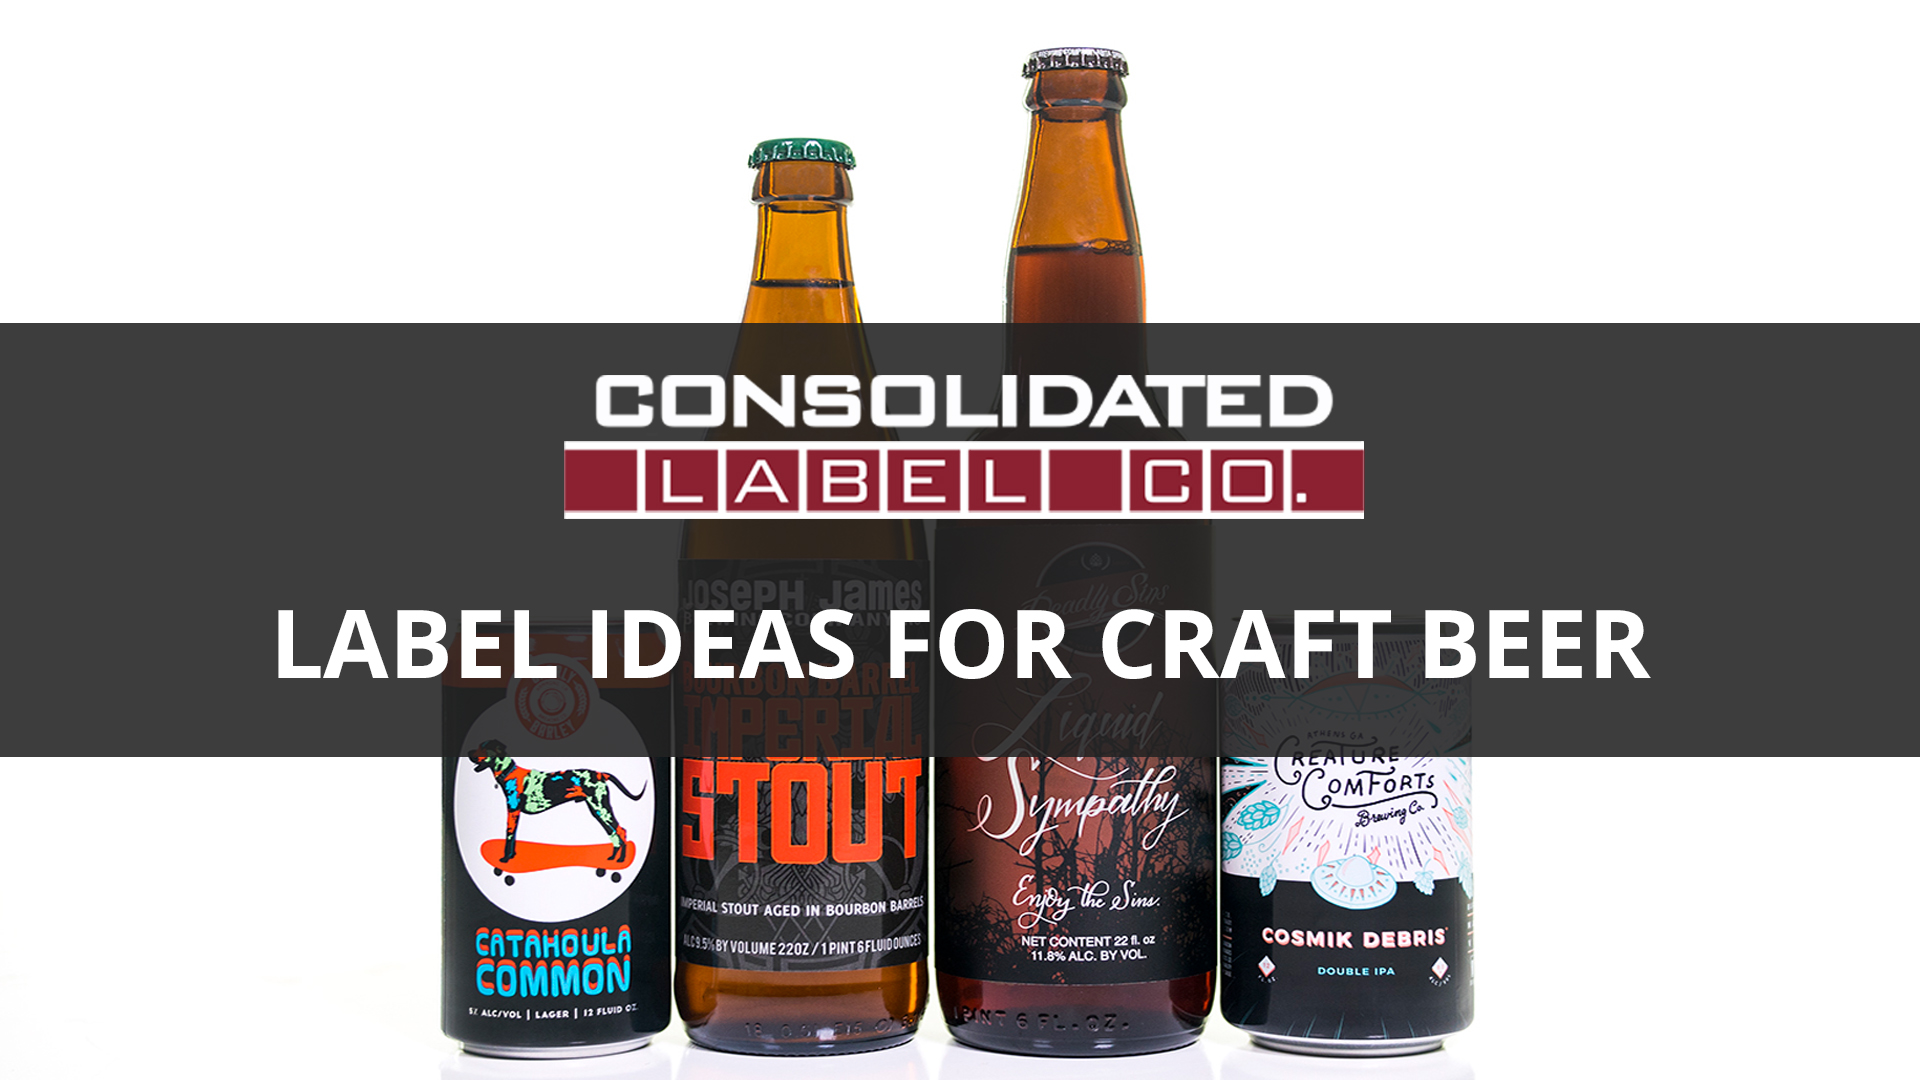 label ideas for craft beer